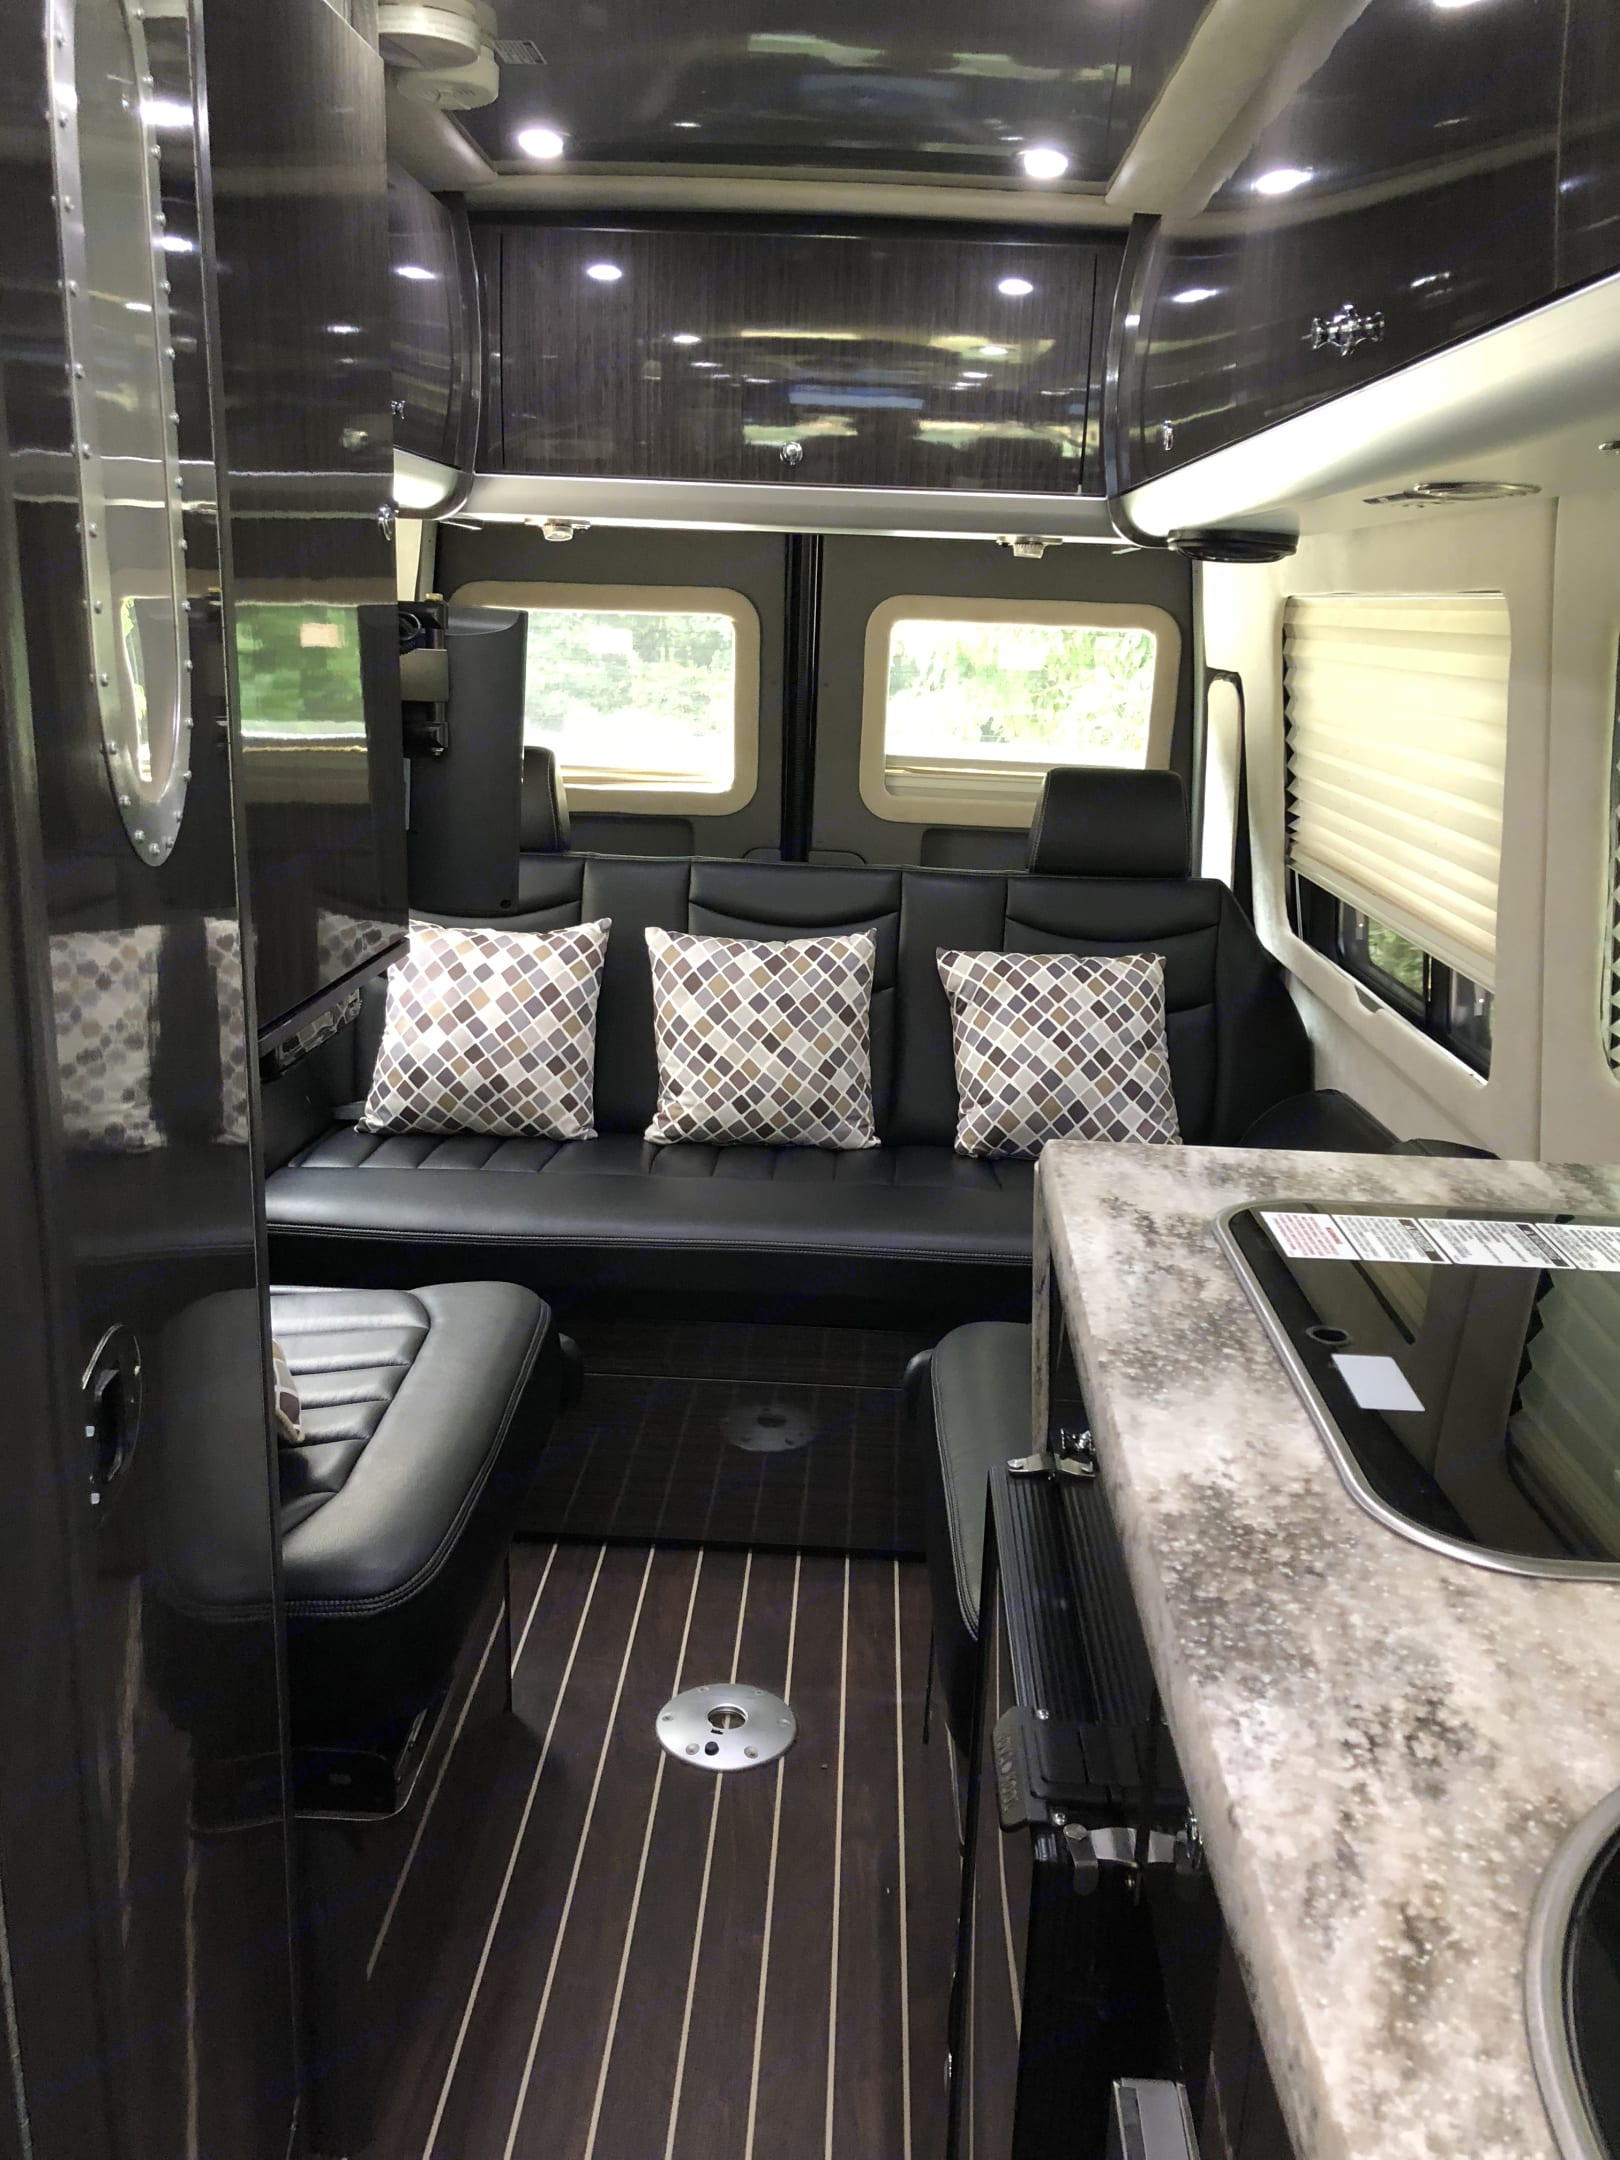 Bench seating for four, plus oversized ottoman . Airstream Interstate 2014